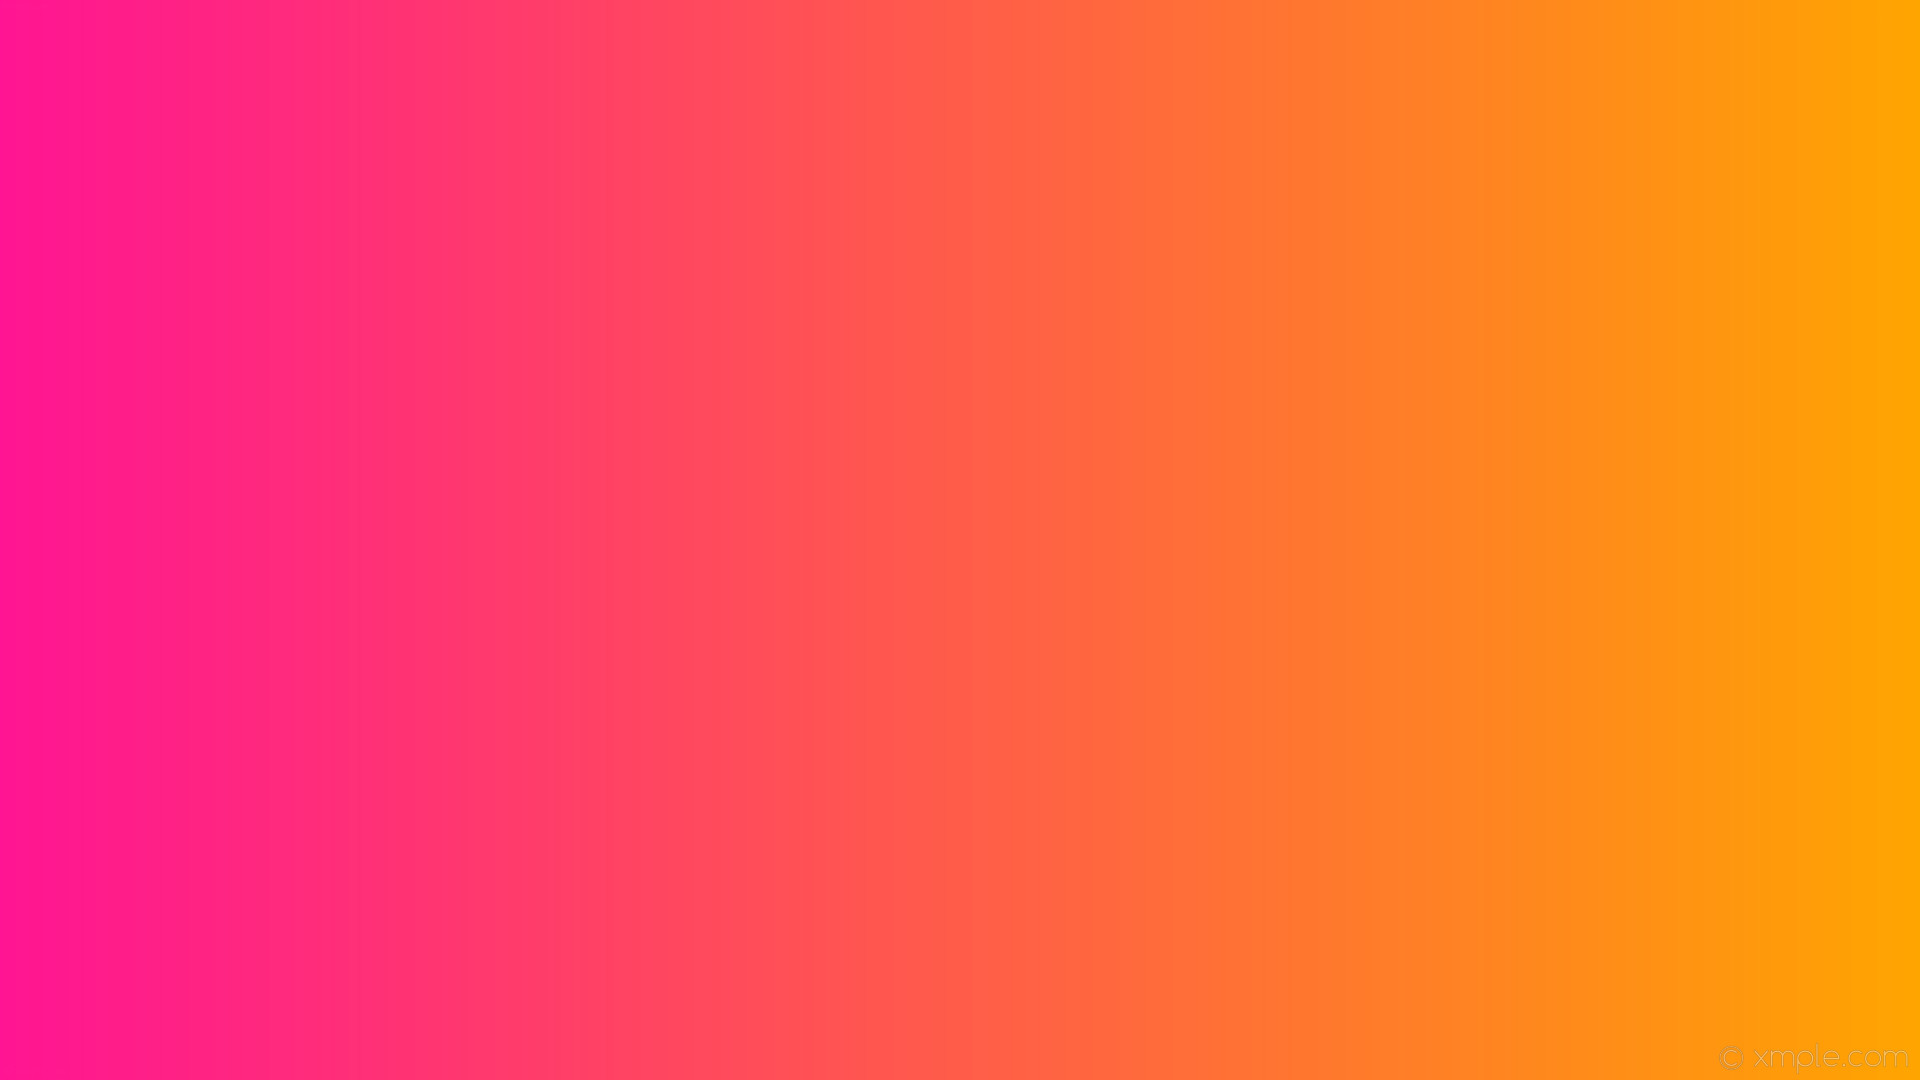 1920x1080 wallpaper gradient linear pink orange deep pink #ffa500 #ff1493 0°